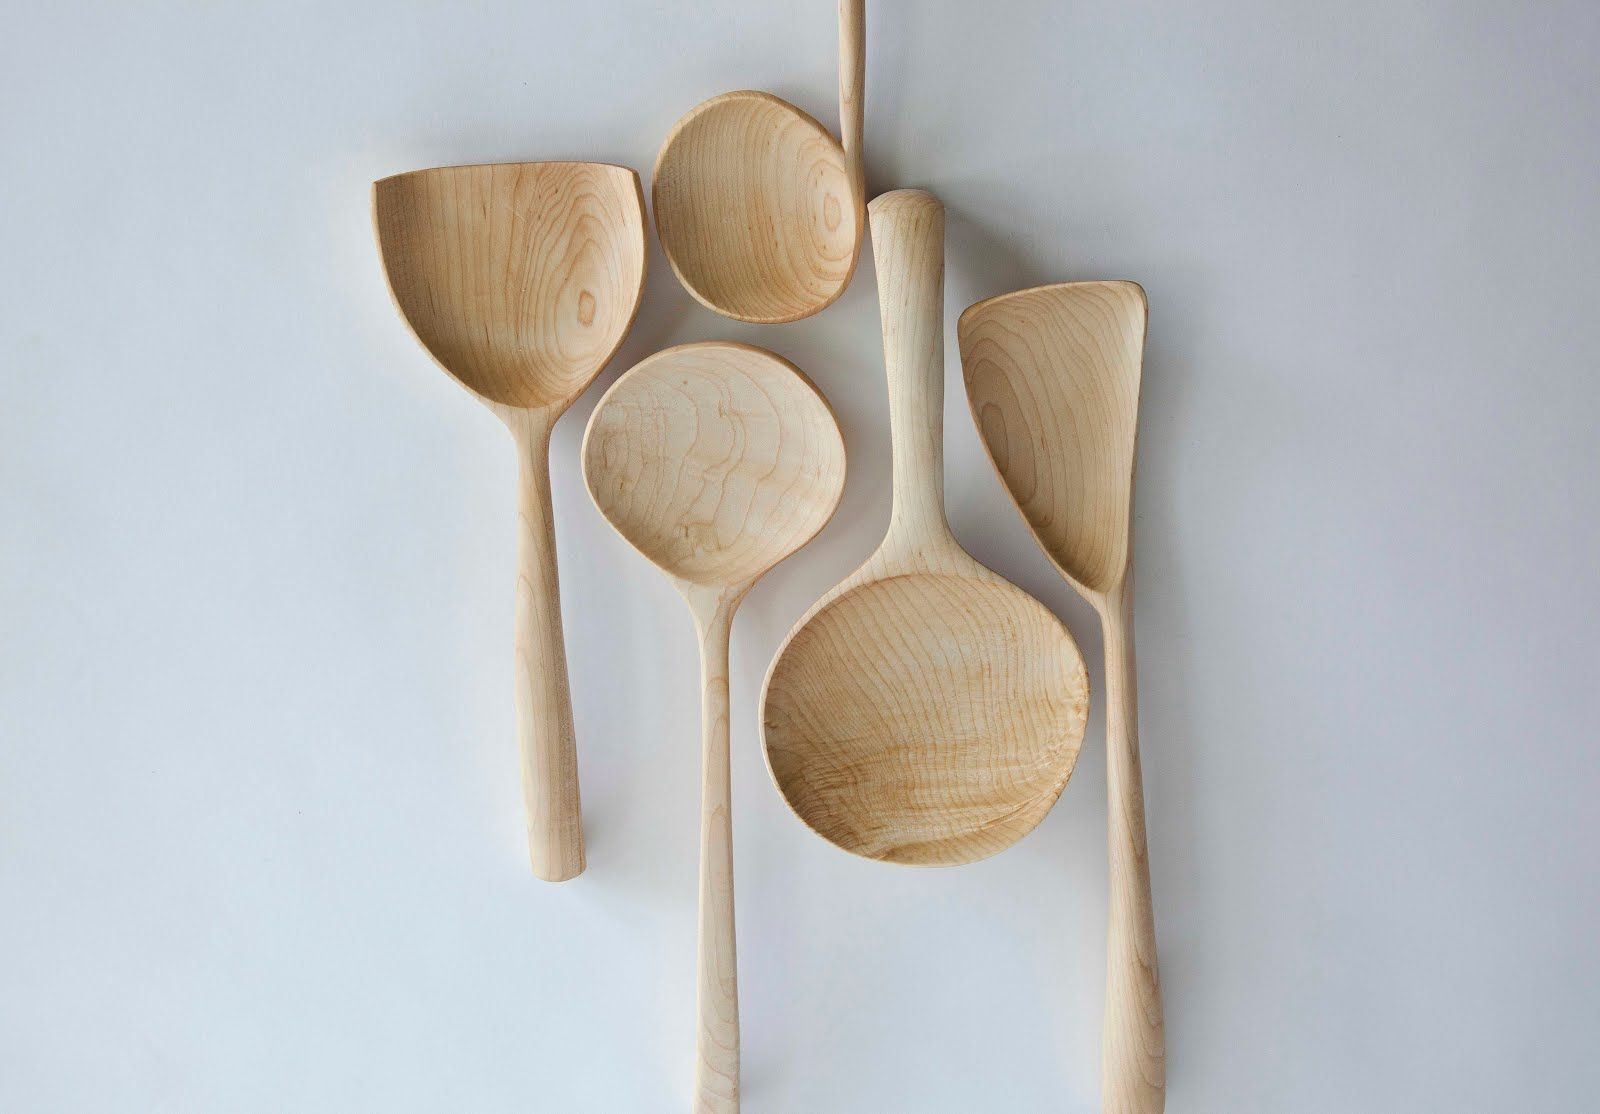 Bambu Cocinas Joshua Vogel Sculptural Kitchen Tools Lettering